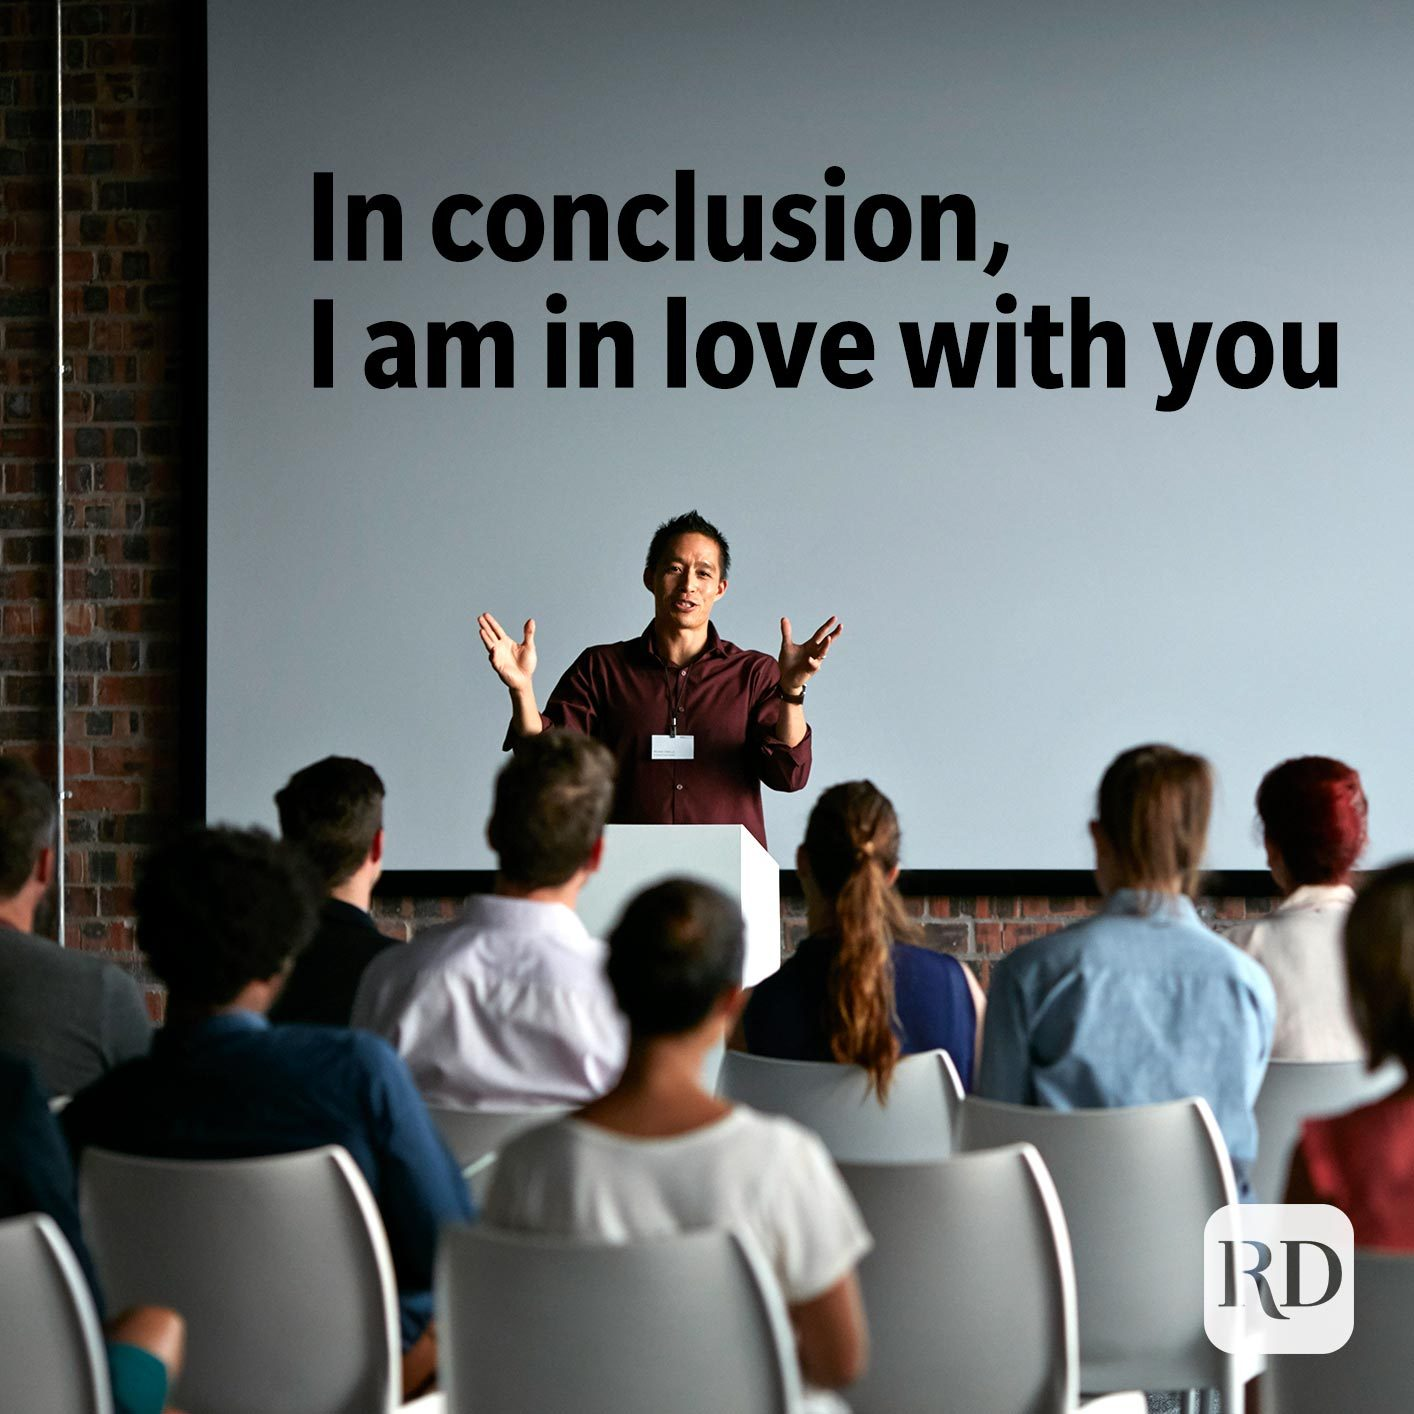 Man giving a presentation. Meme text: In conclusion, I am in love with you. (Have it written on the white screen)